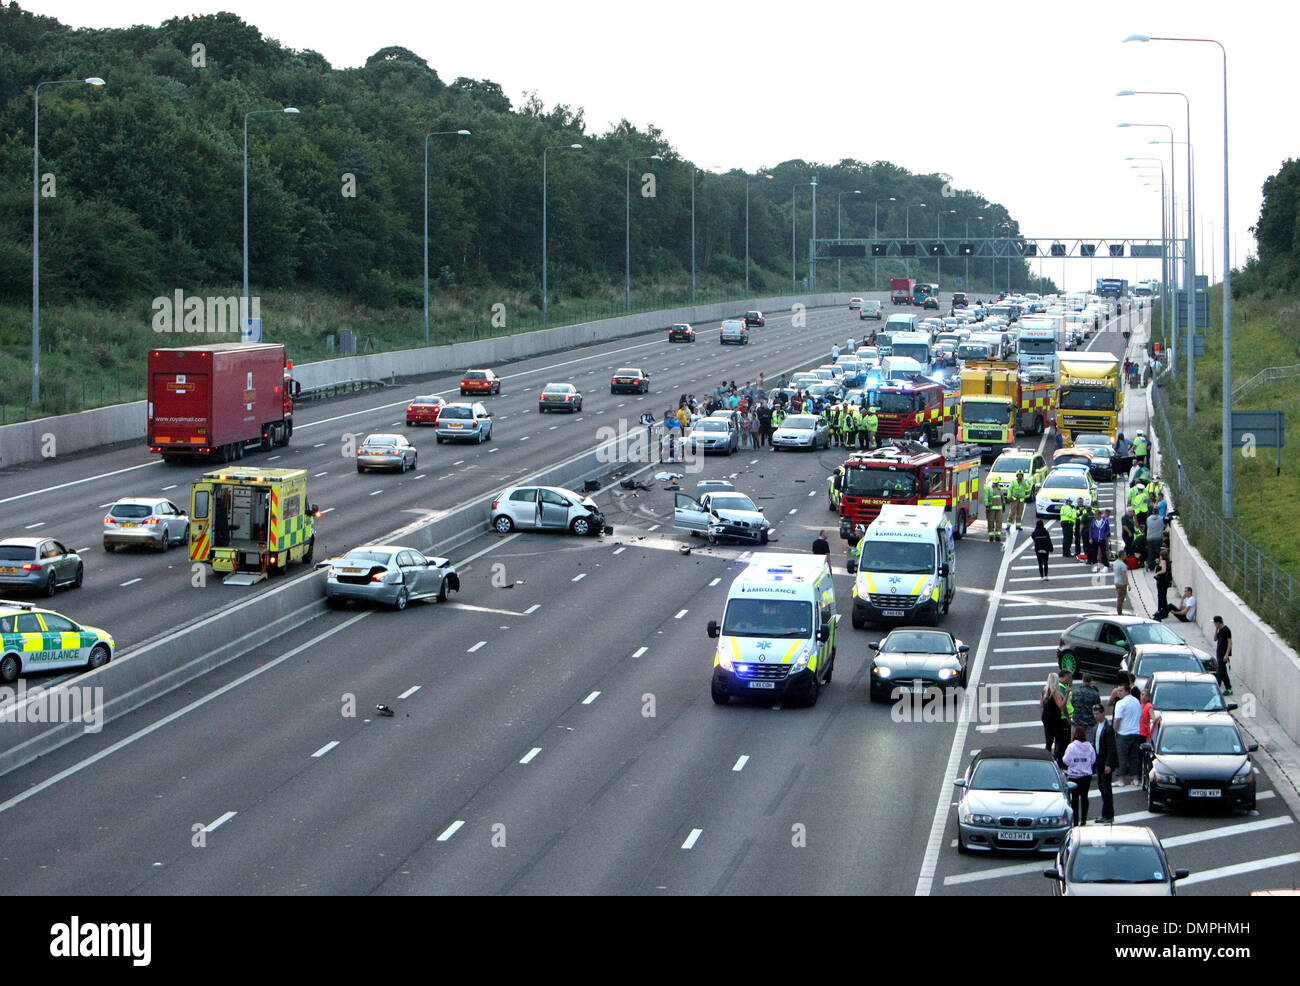 M25 Accident Stock Photos & M25 Accident Stock Images - Alamy